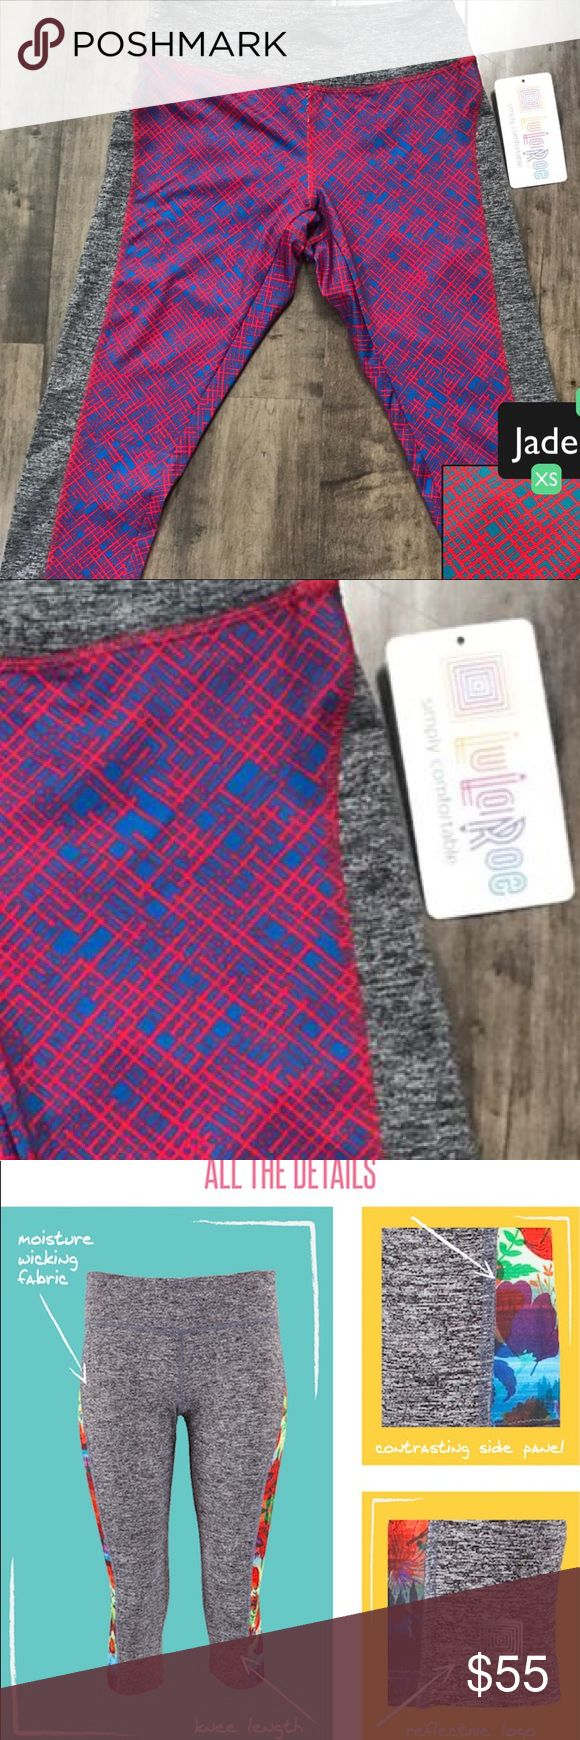 """LuLaRoe Jade Athletic Workout Capri The """"Jade"""" capri athletic leggings let you get your sweat on comfortably and stylishly. They have a comfortable and flattering yoga waistband to ensure you'll look and feel good, no matter where you are on your fitness journey. LuLaRoe Pants Capris"""